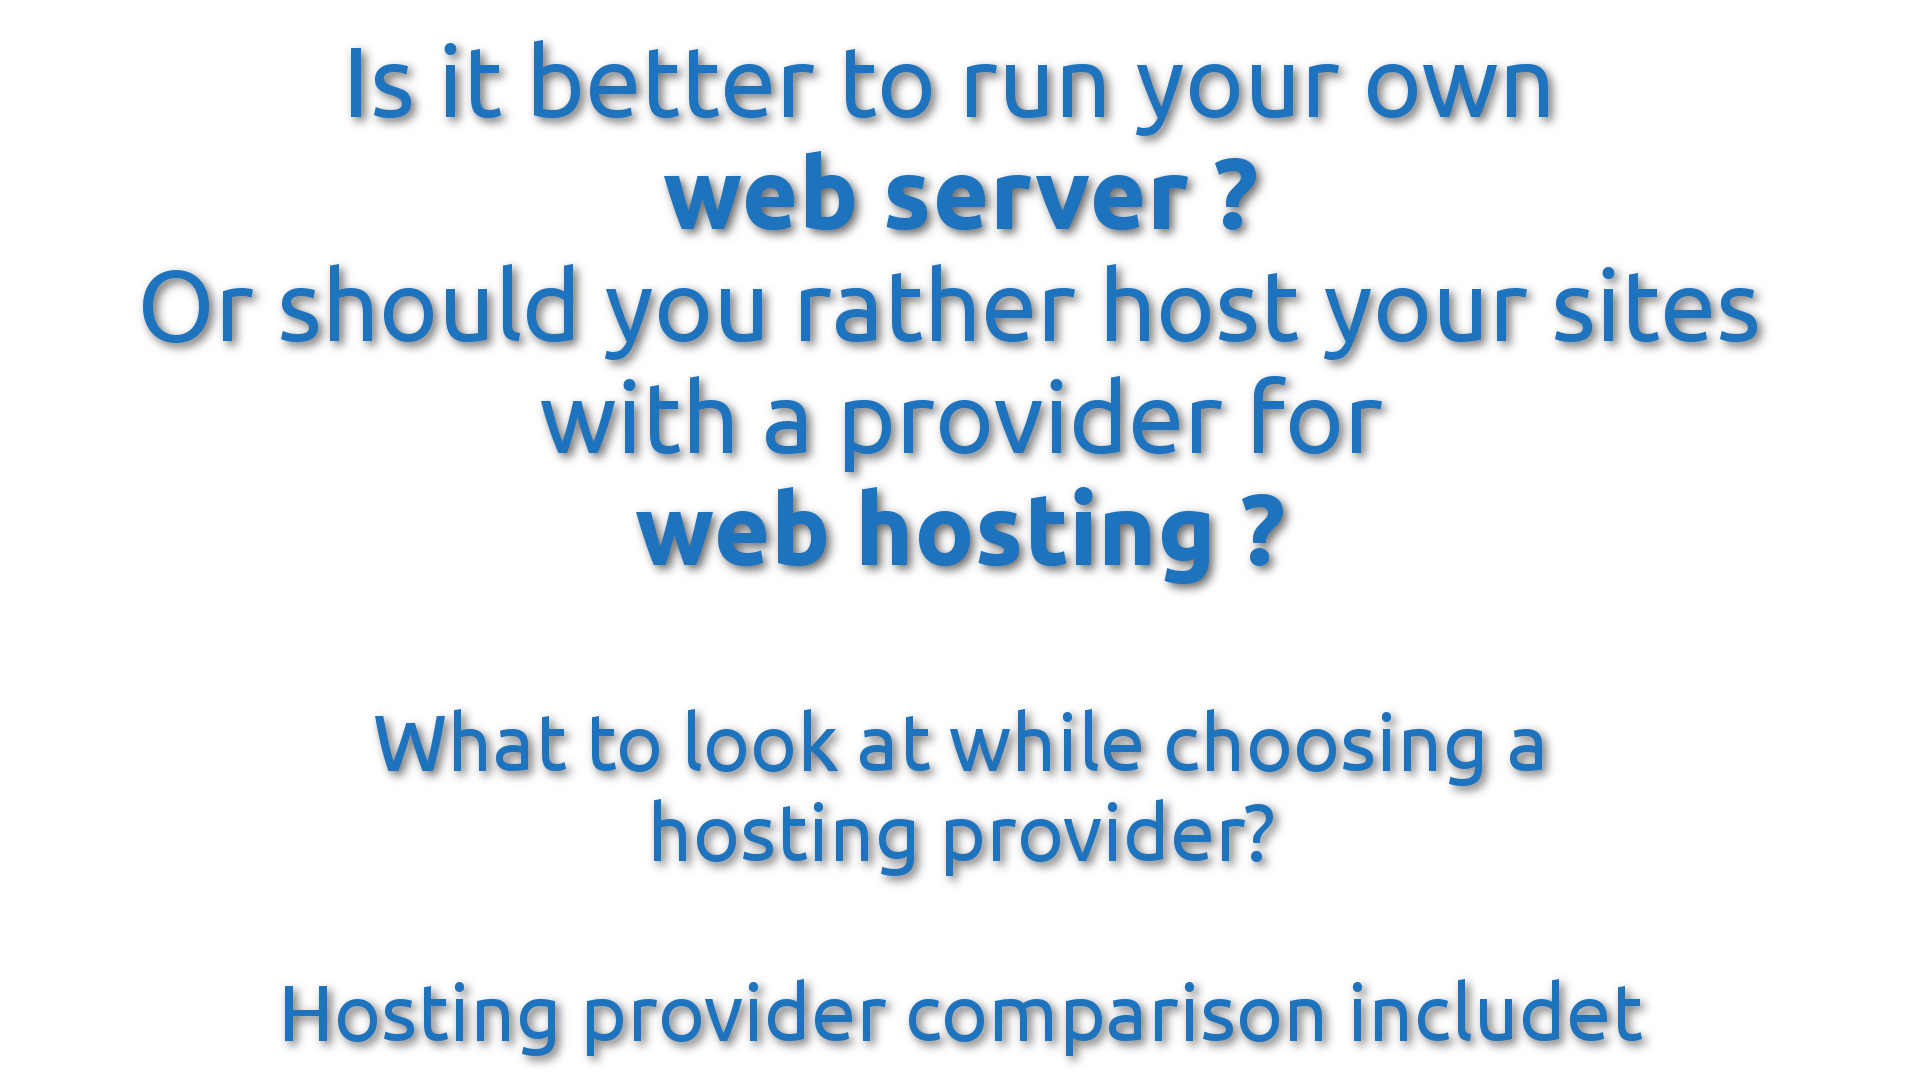 Is it better to run your own server or to rent some space at a hosting provider?